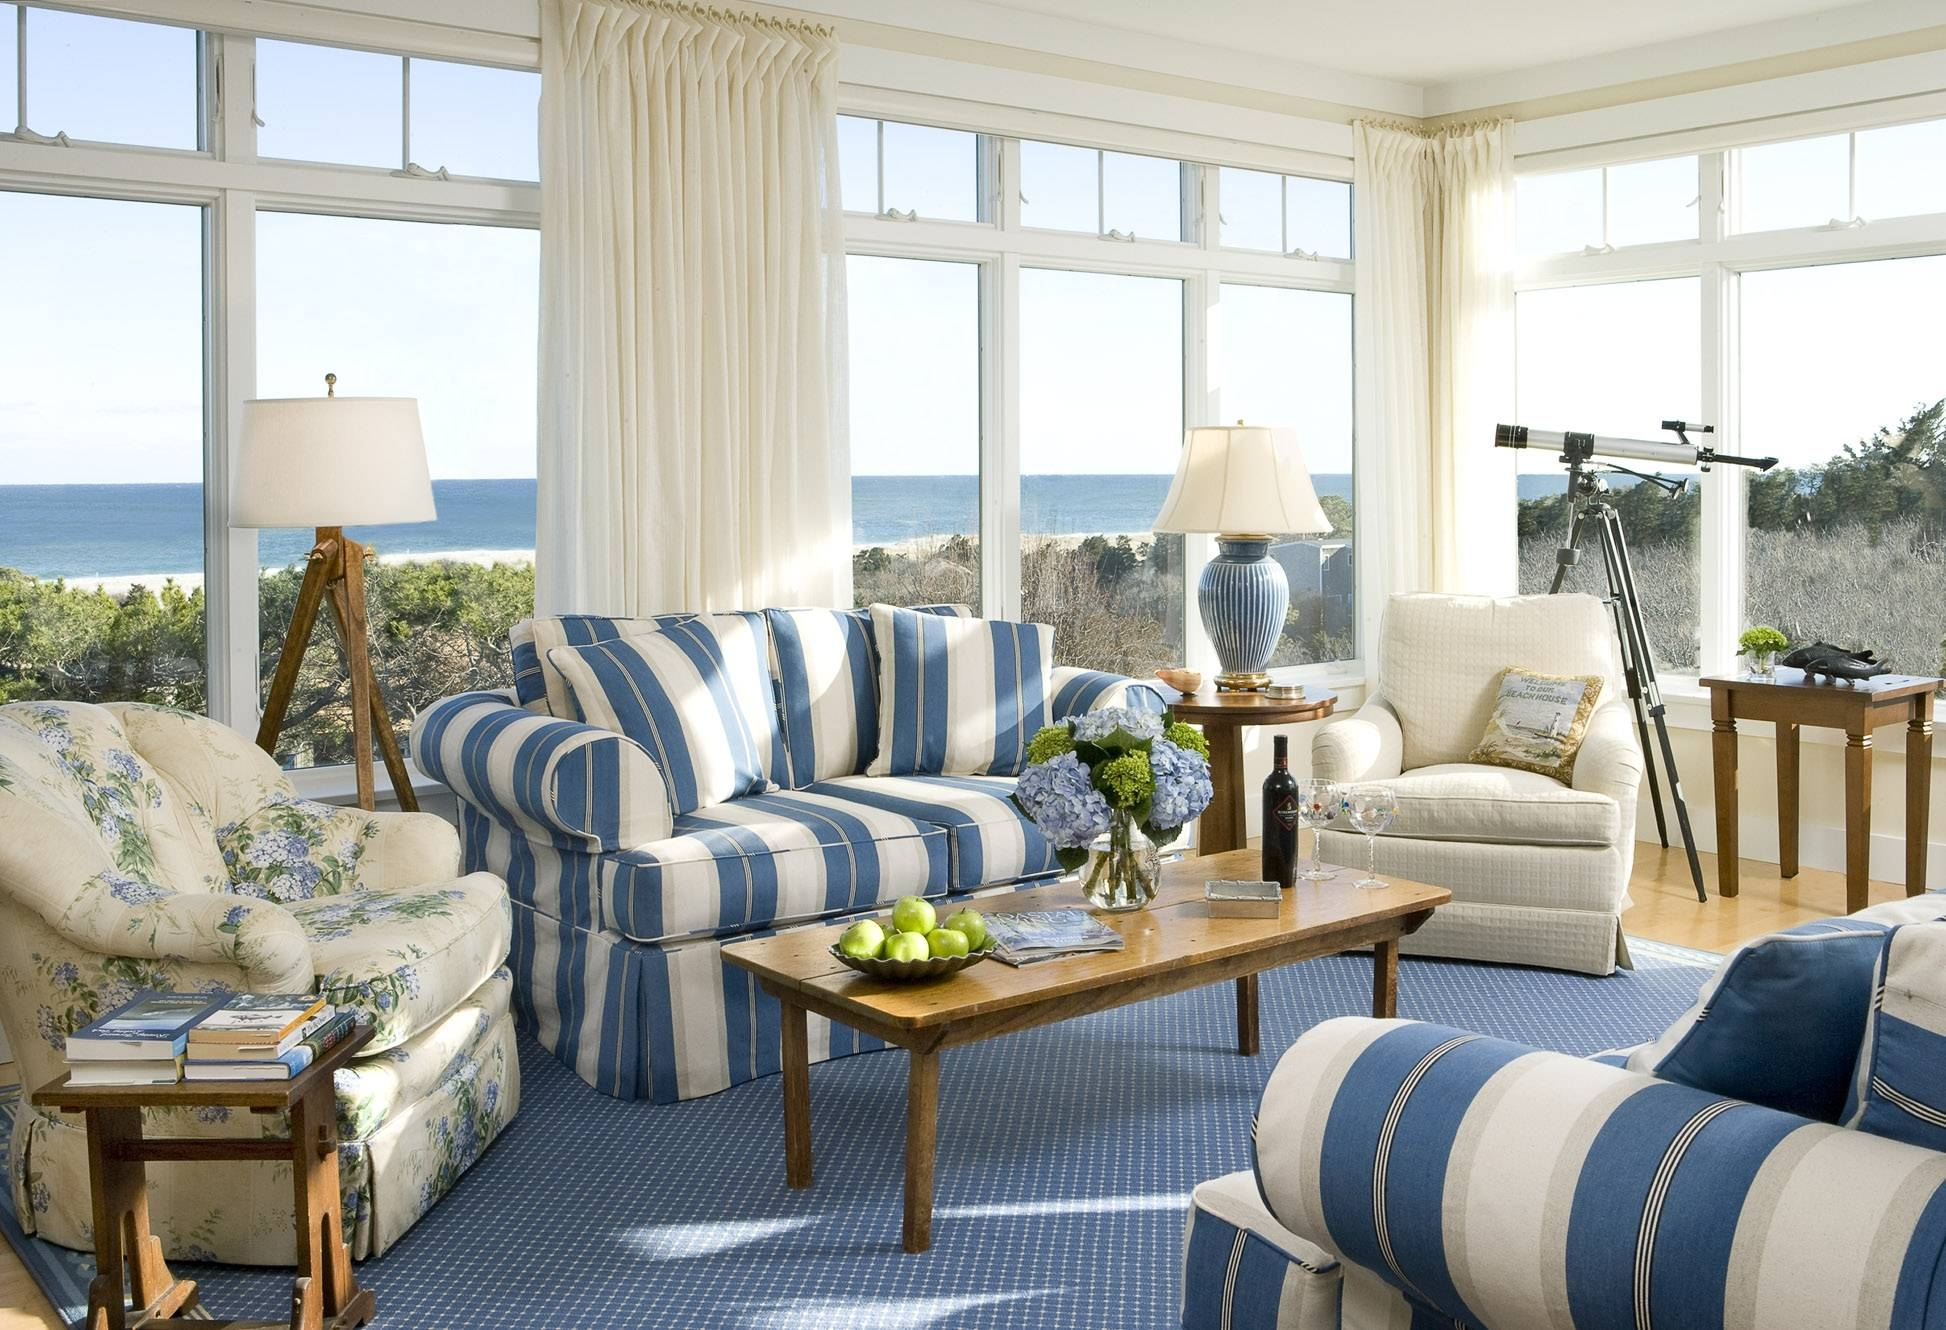 Cottage Style Living Rooms. Fascinating Coastal Cottage Style with regard to Cottage Style Sofas and Chairs (Image 5 of 15)